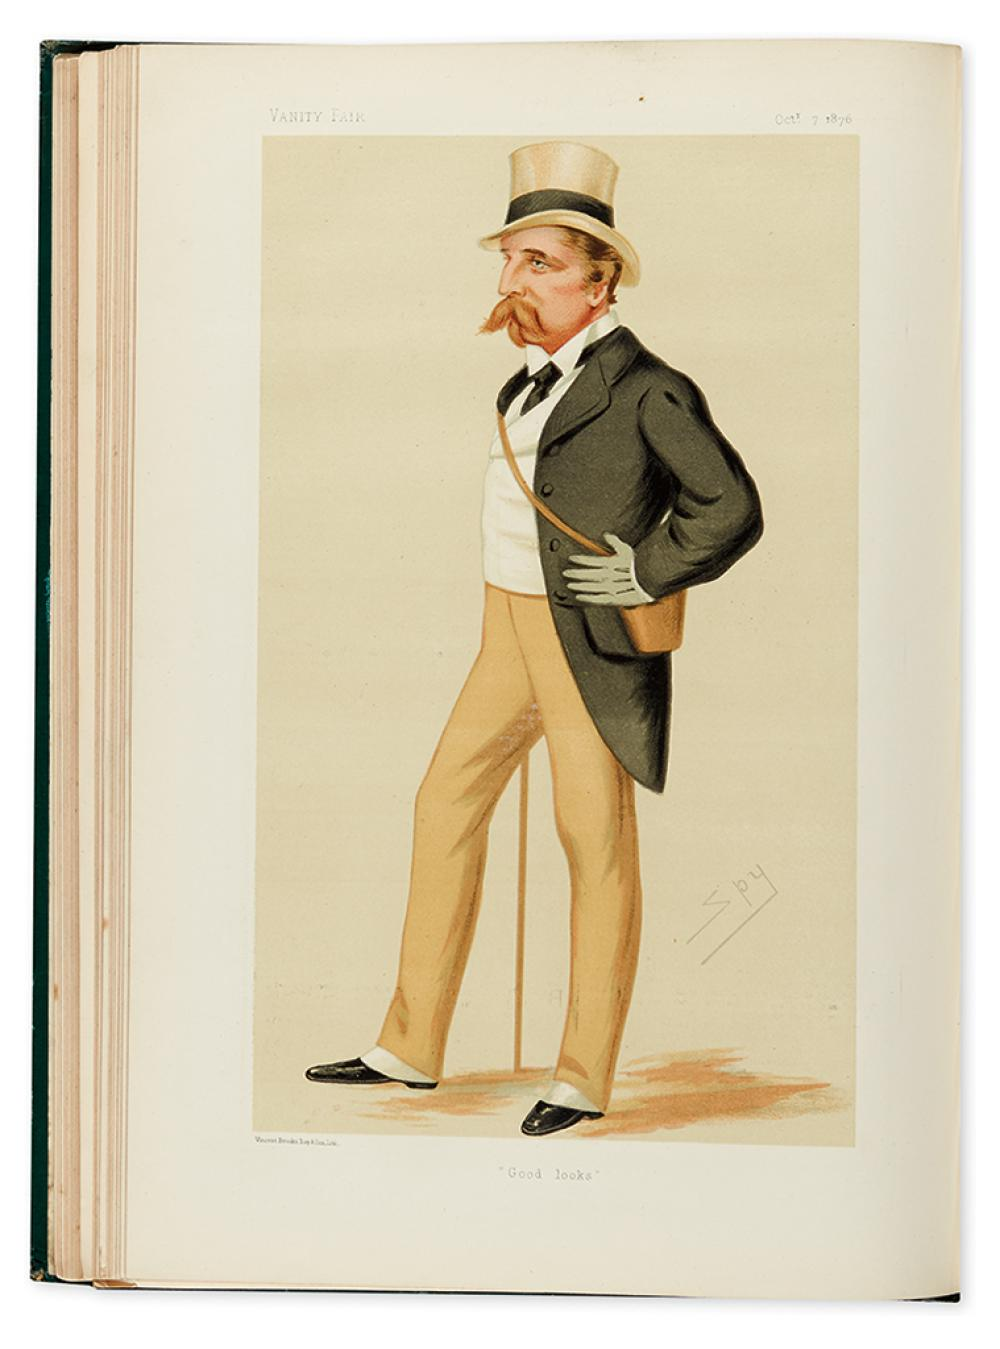 (CARICATURE). Vanity Fair: A Weekly Show of Political, Social & Literary Wares.